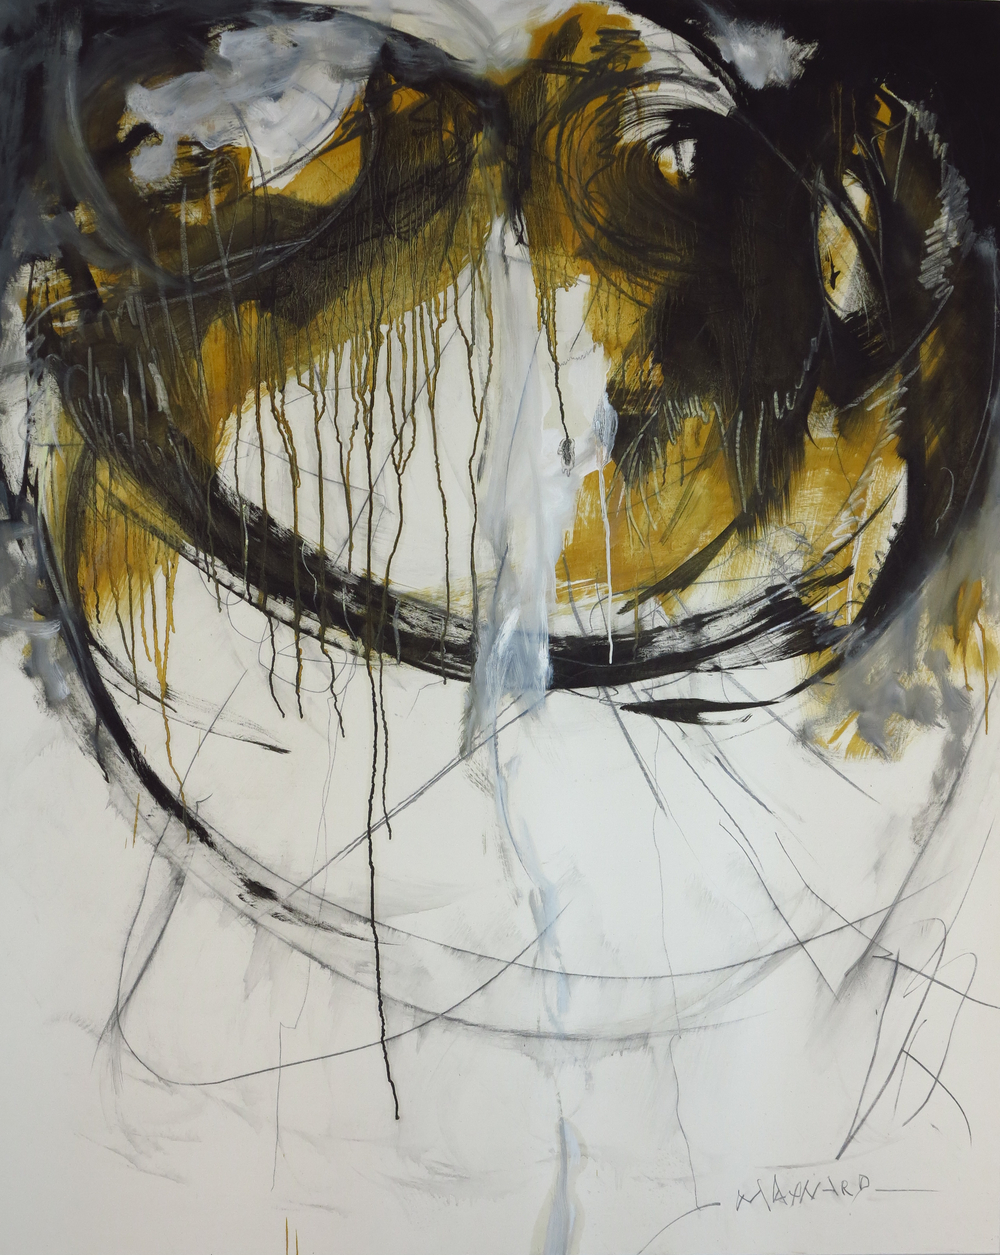 Oil on canvas - size 130 x 160 cm / 51 x 63 inches